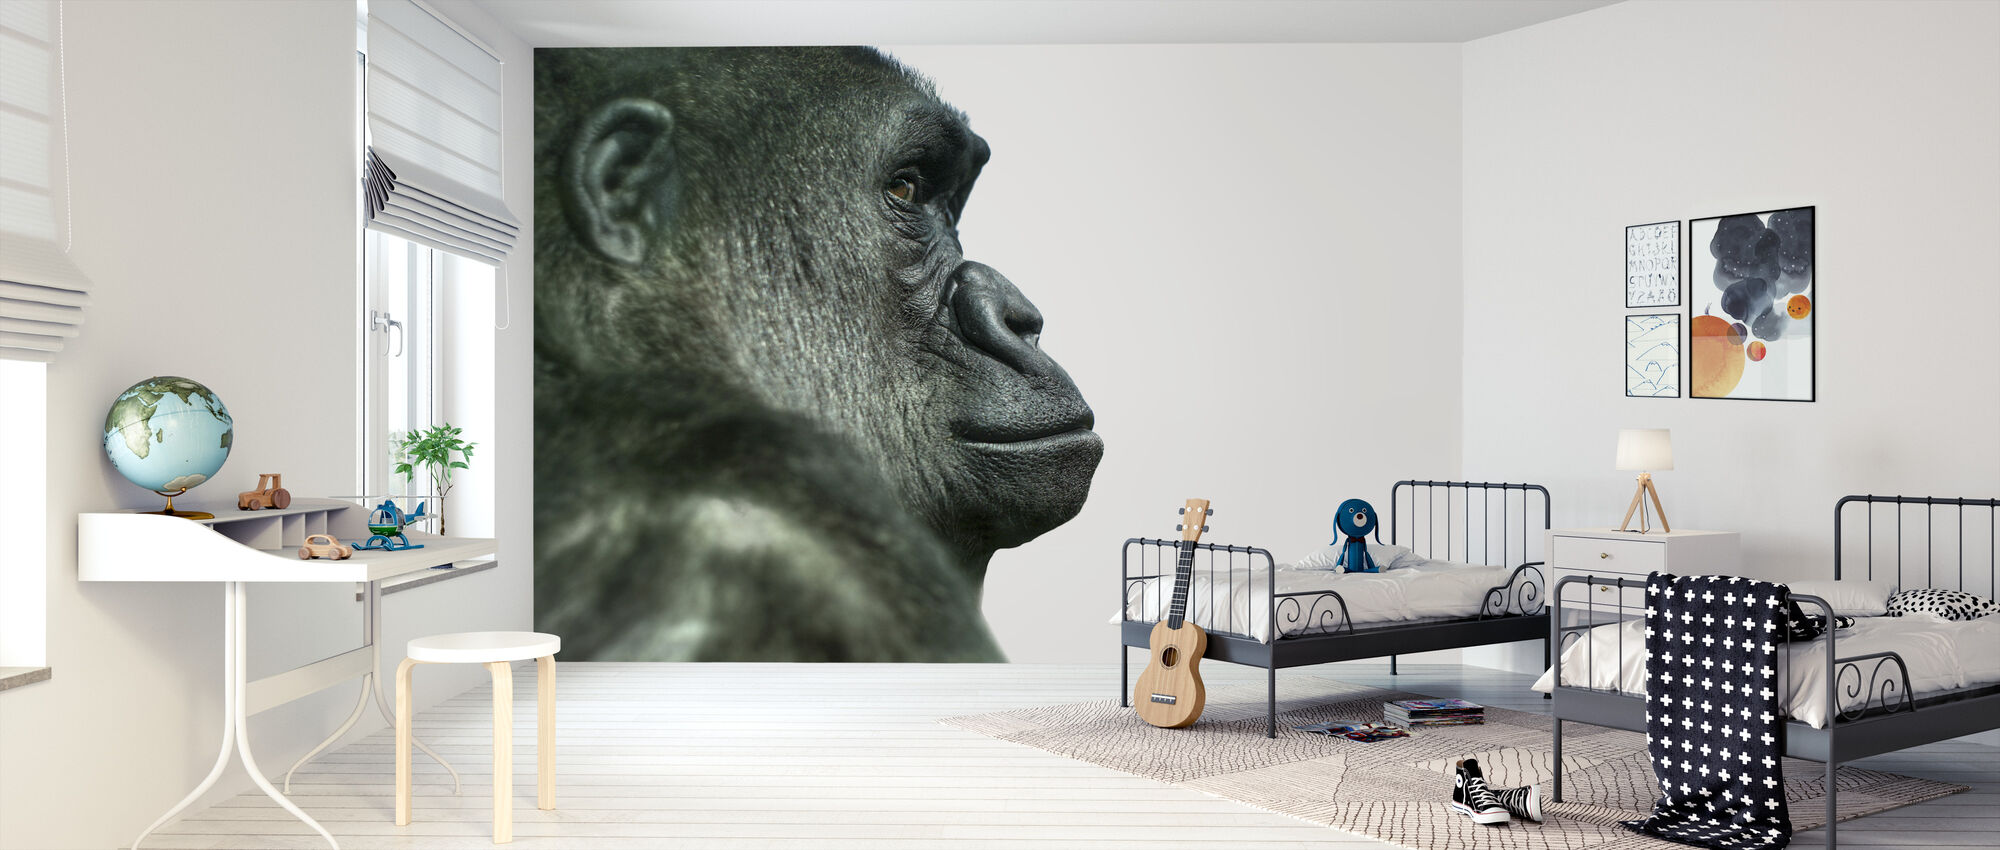 Gorilla - Wallpaper - Kids Room